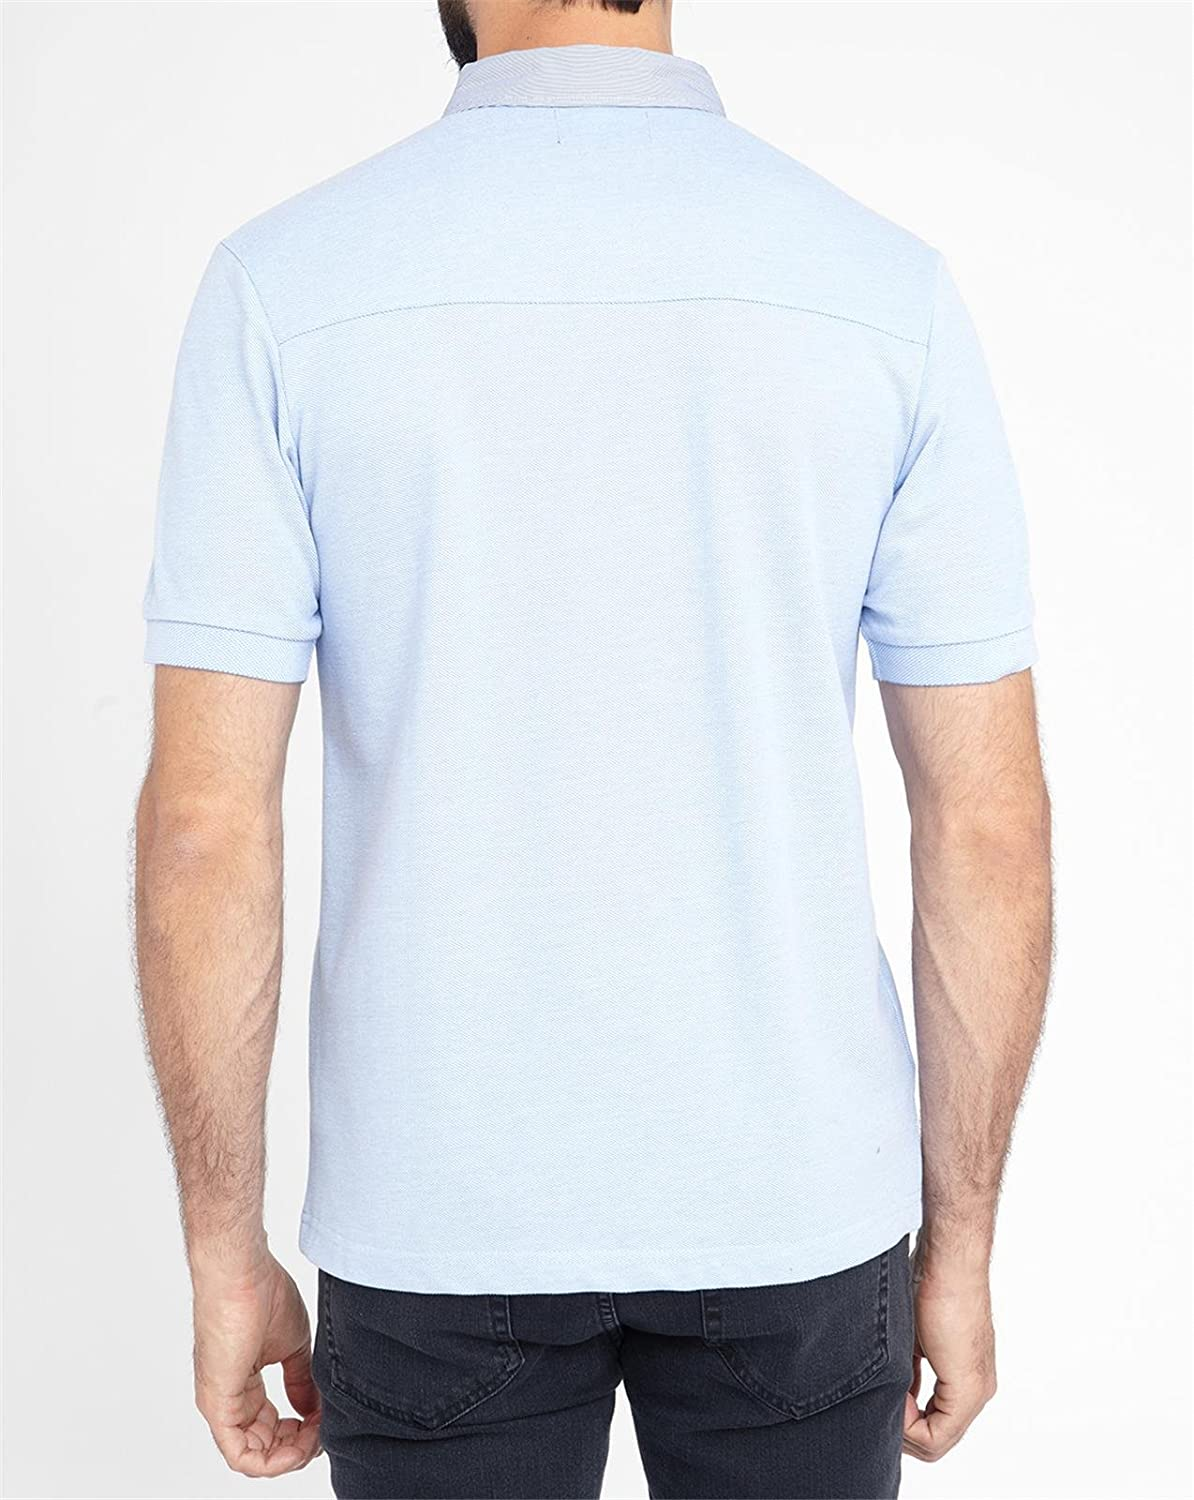 263cc7959 Fred Perry Woven trim Polo T-shirt Slim Fit M7213 Sky Blue Small:  Amazon.co.uk: Clothing